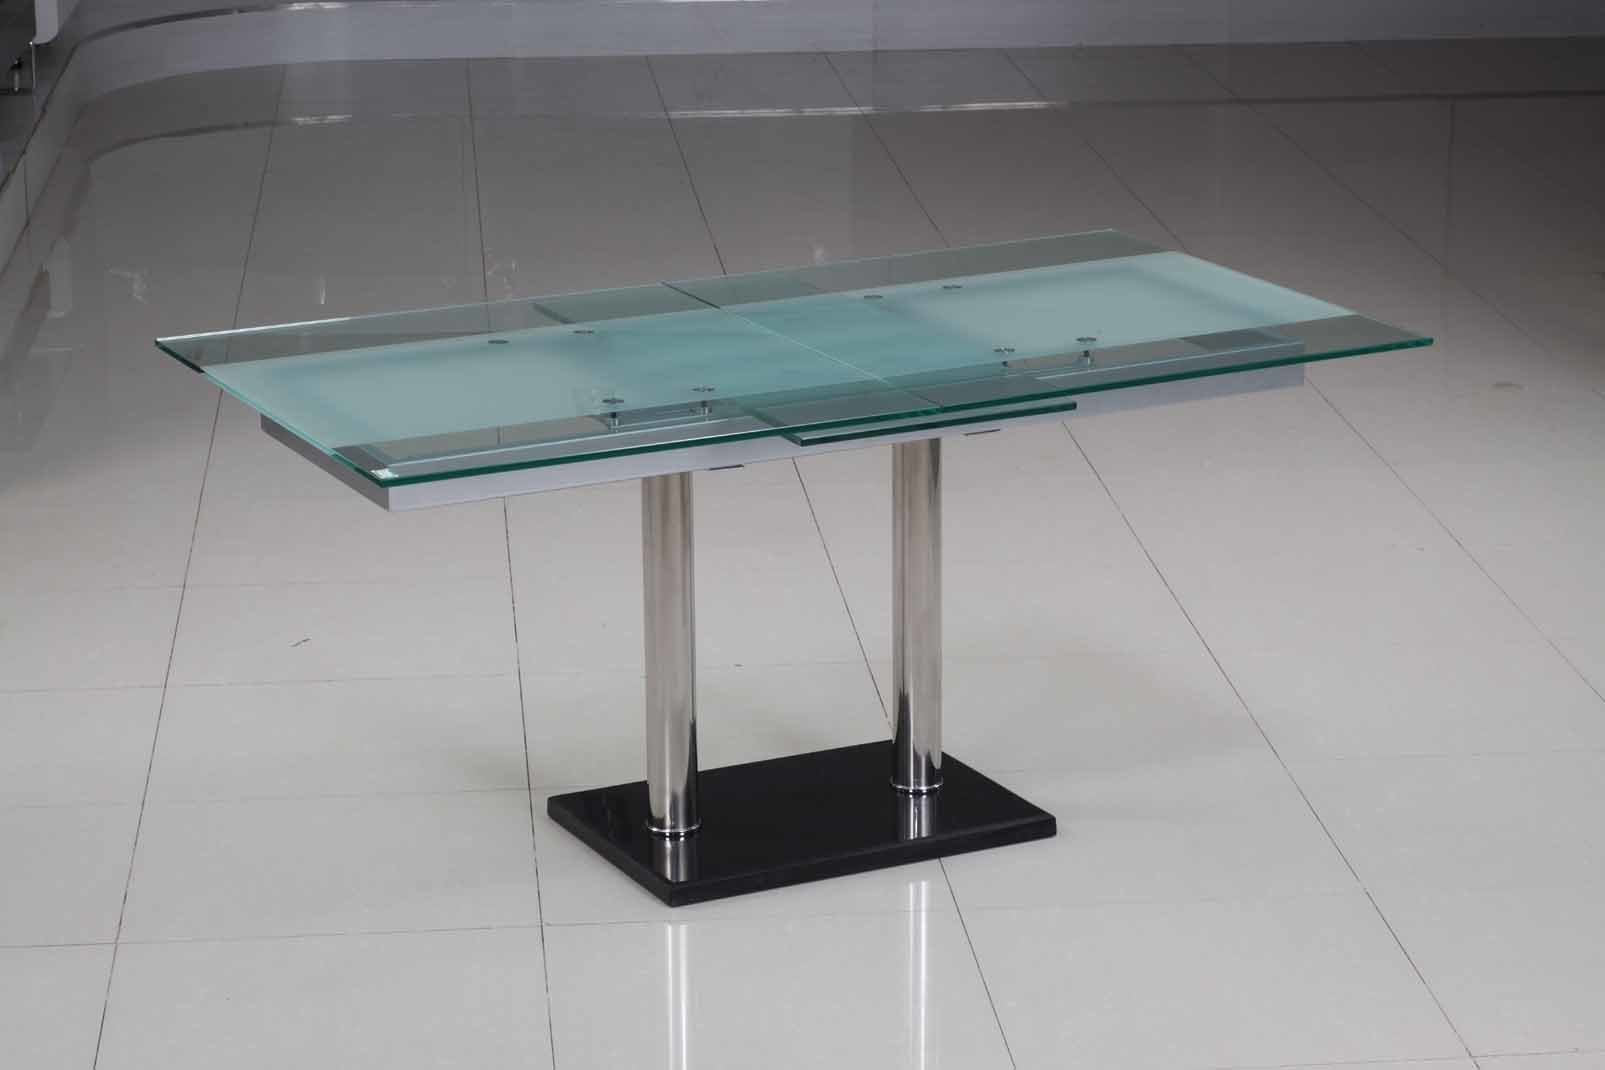 China fancy glass table d201 china functional table for Fancy glass dining table